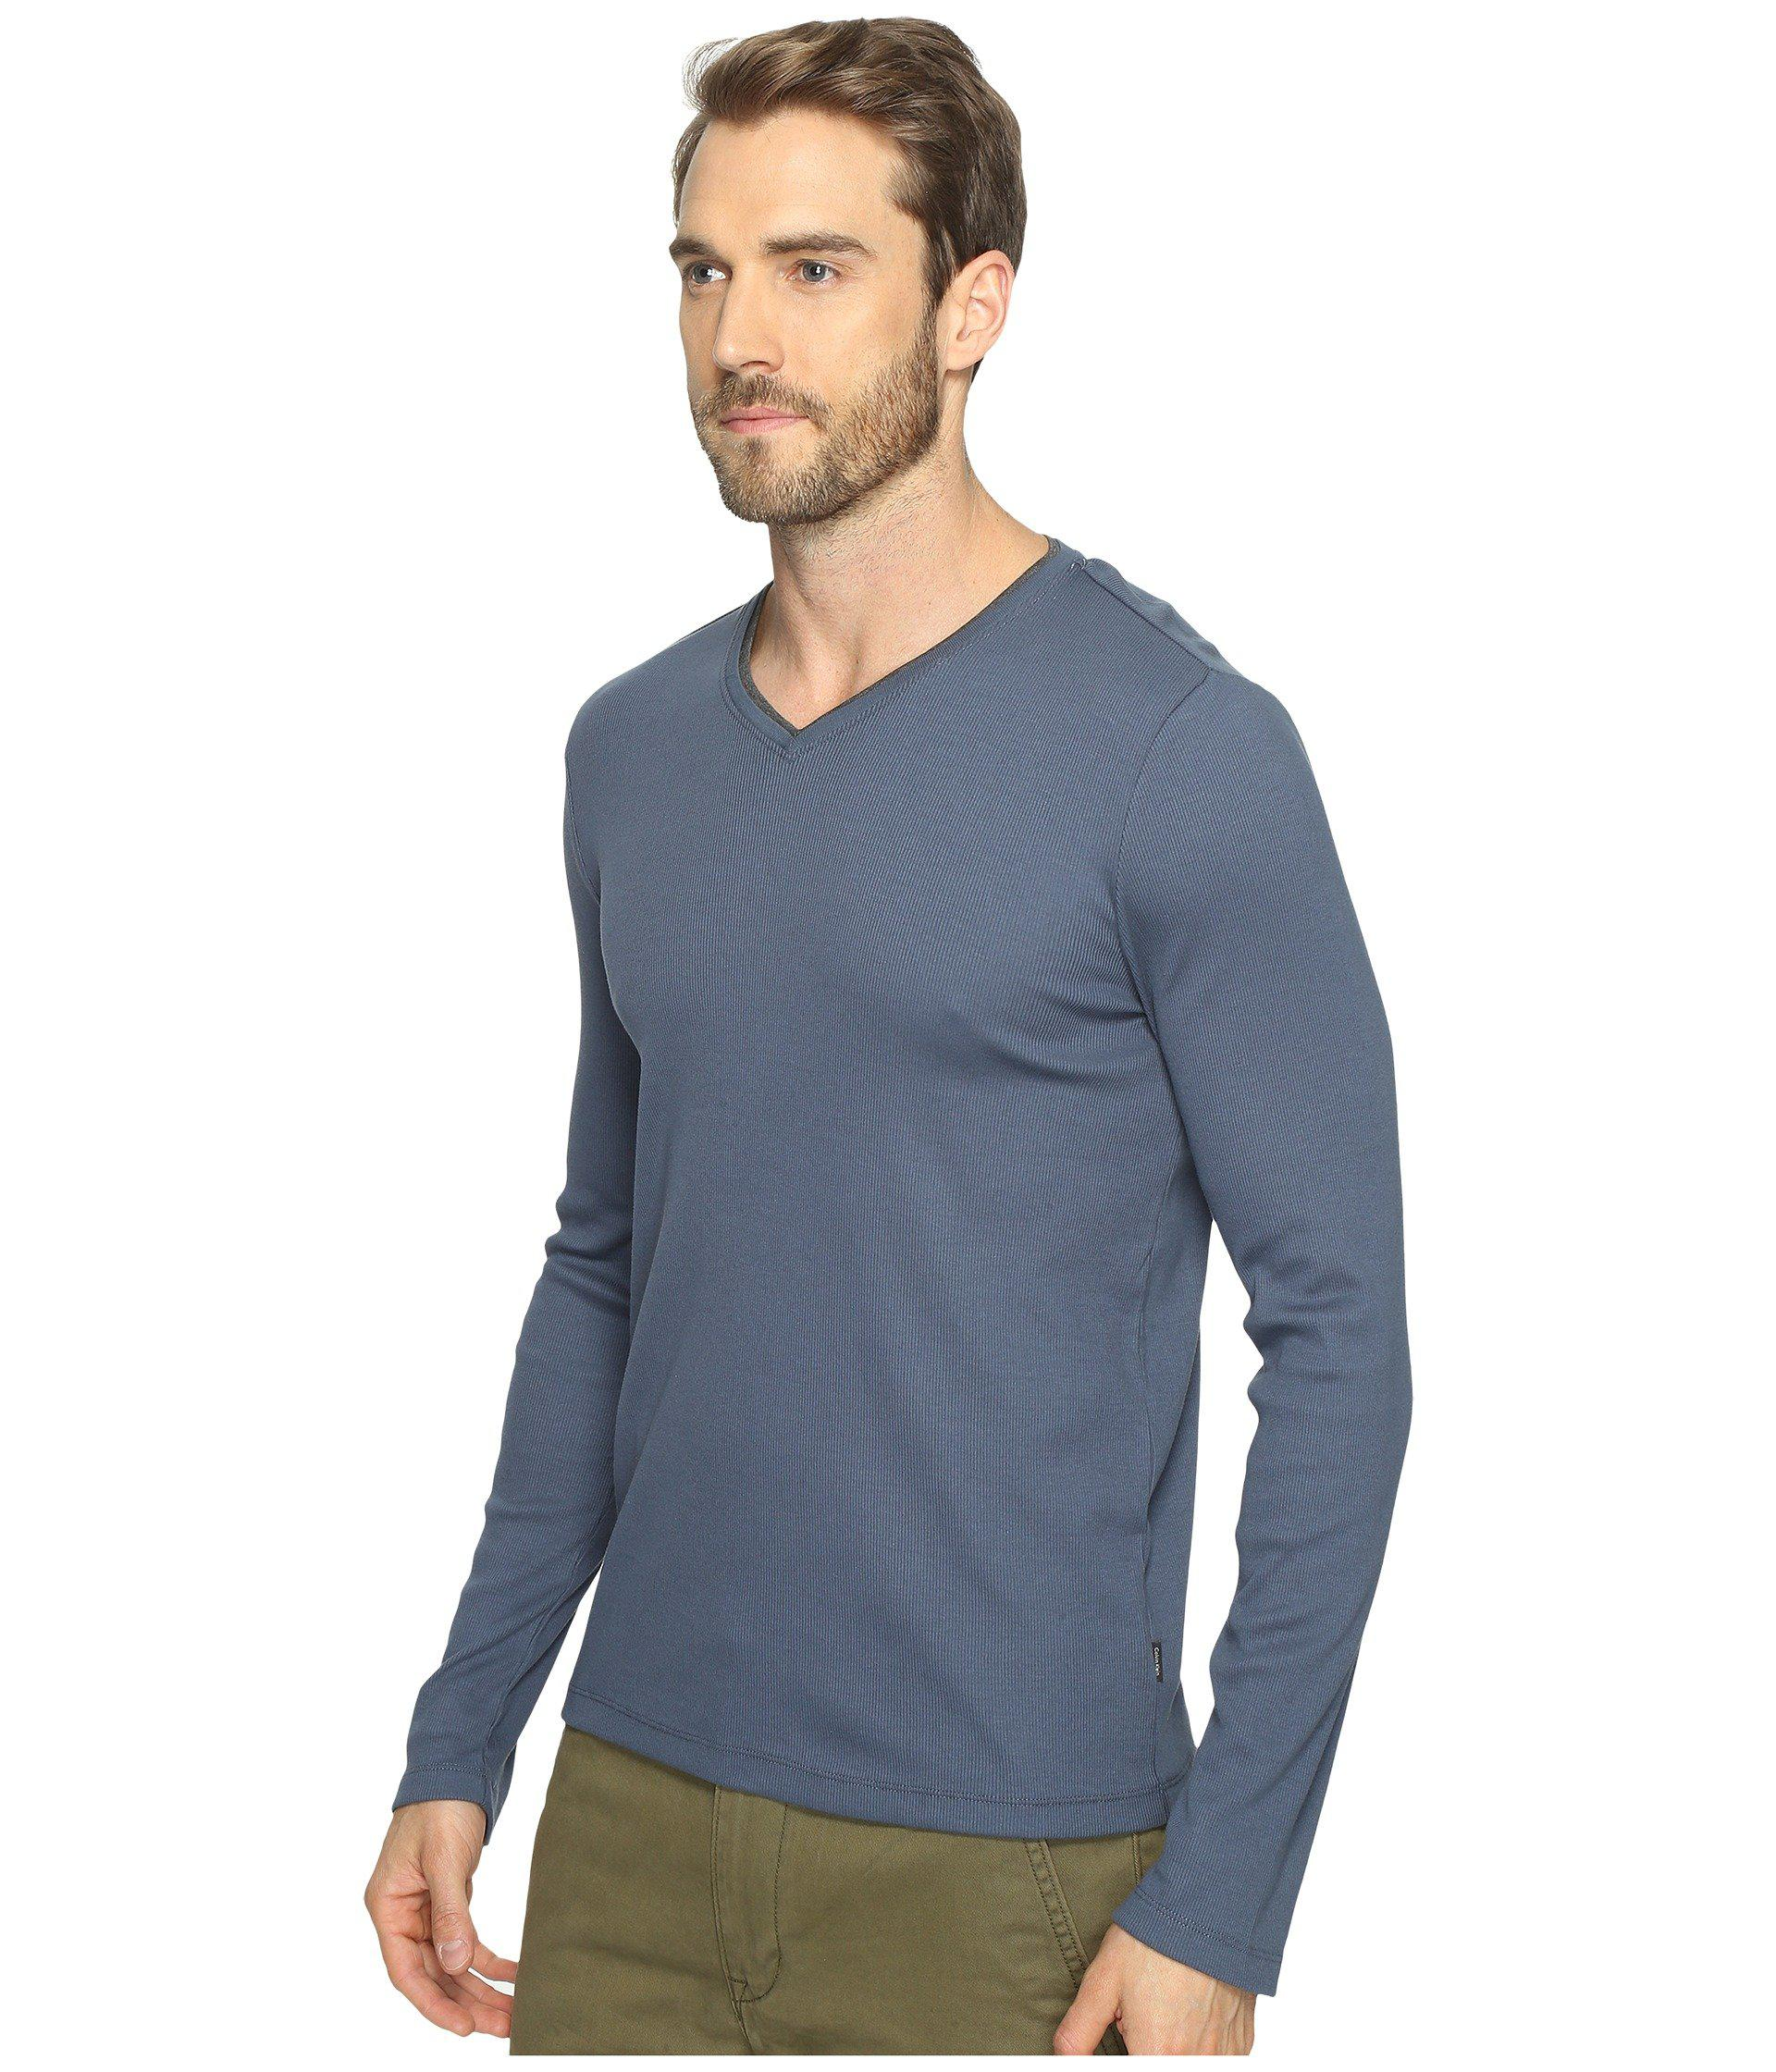 e833a0396a7 Lyst - Calvin Klein Long Sleeve Rib V-neck T-shirt (black) Men s ...